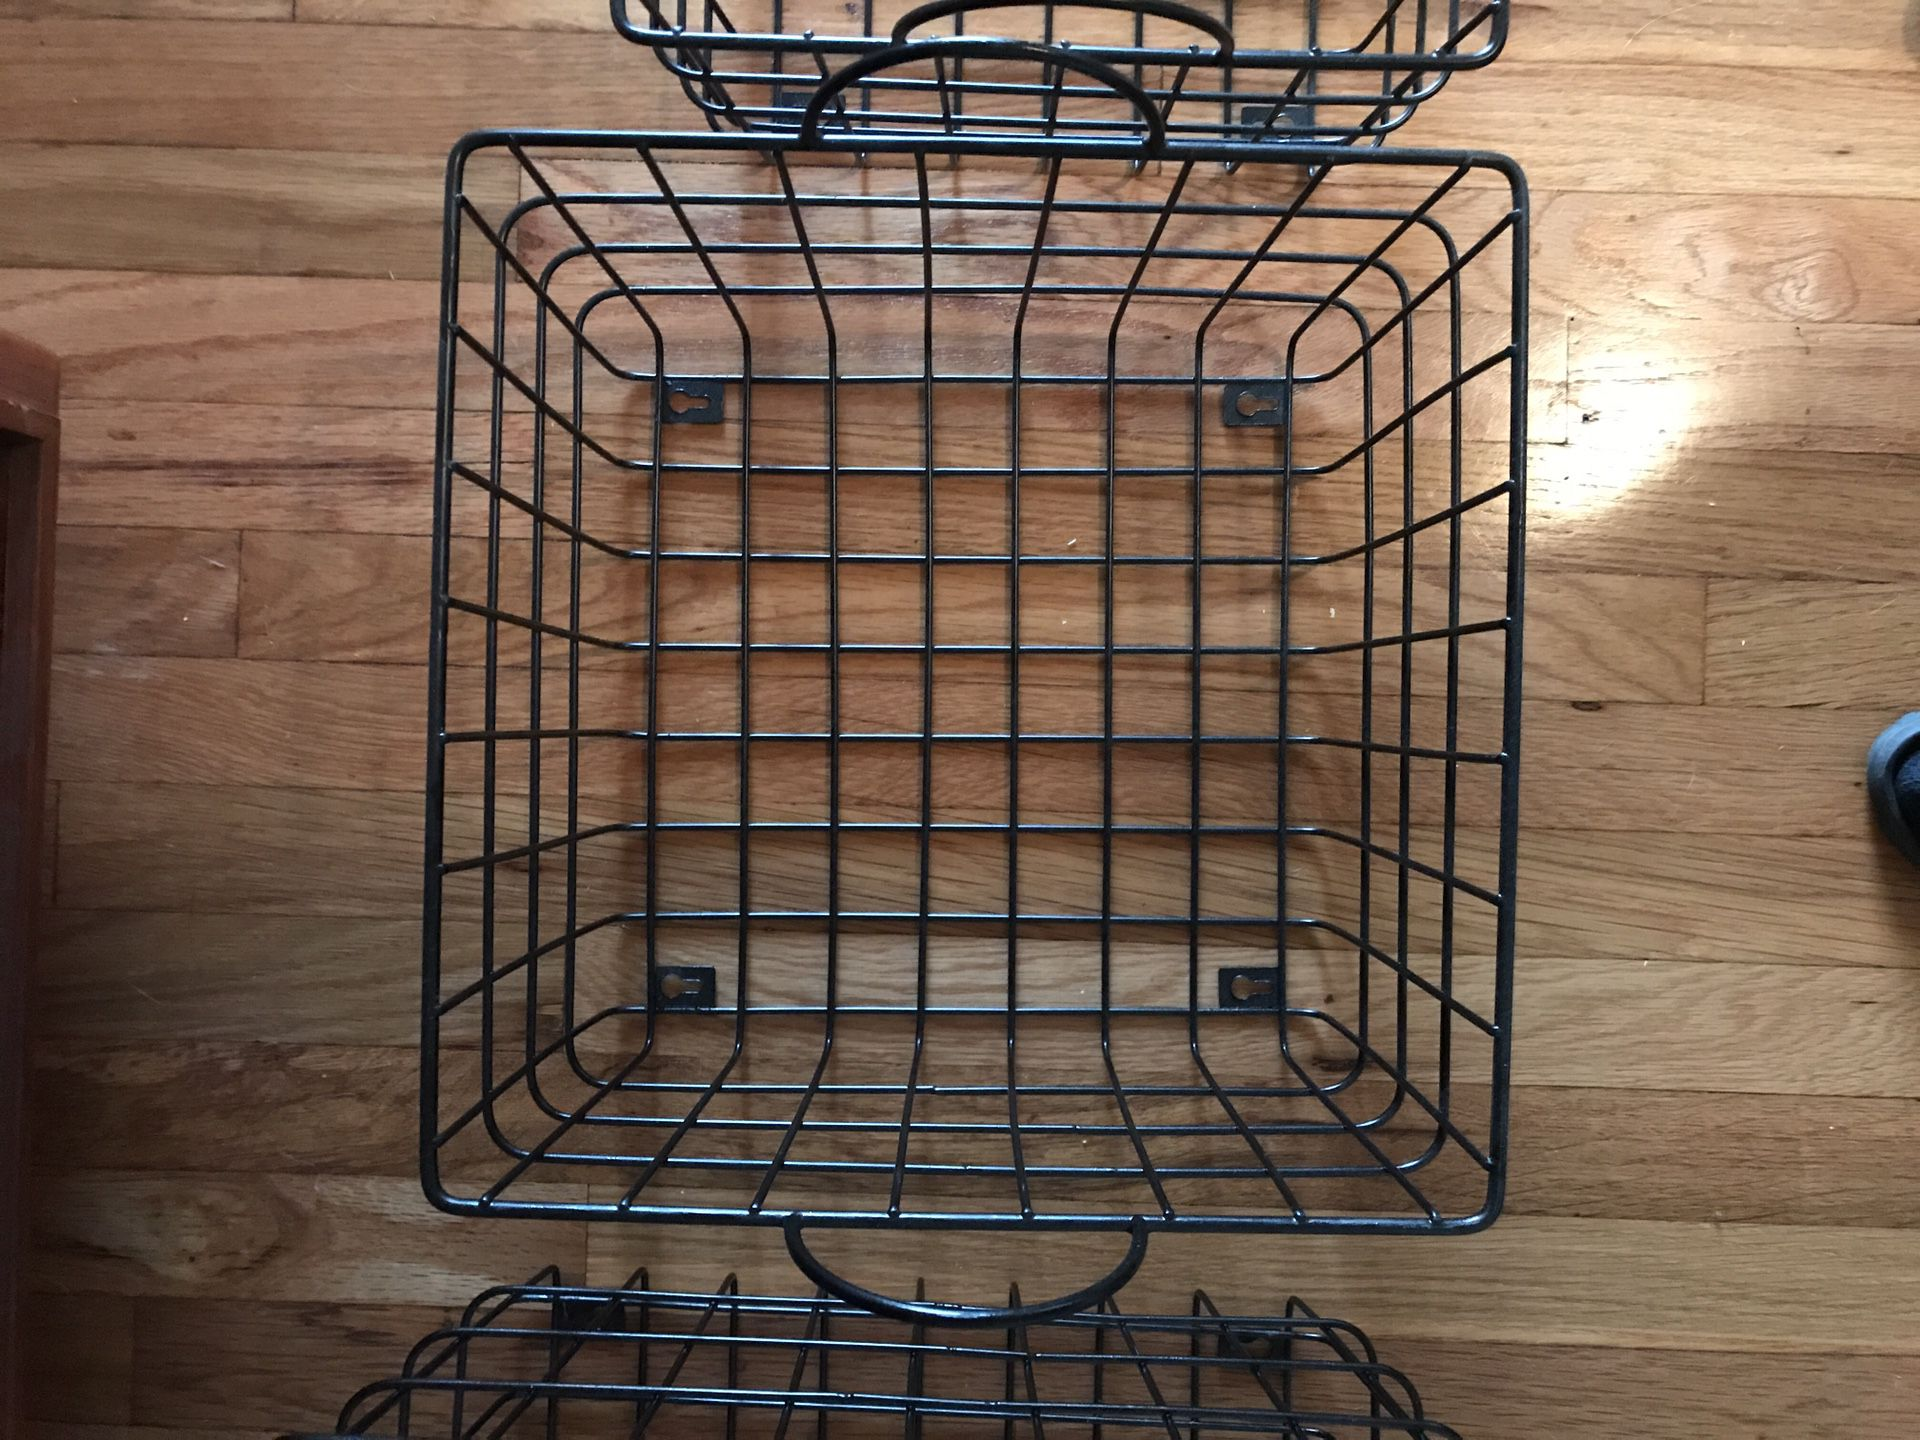 3 PC Metal Basket Set (could be wall shelves)